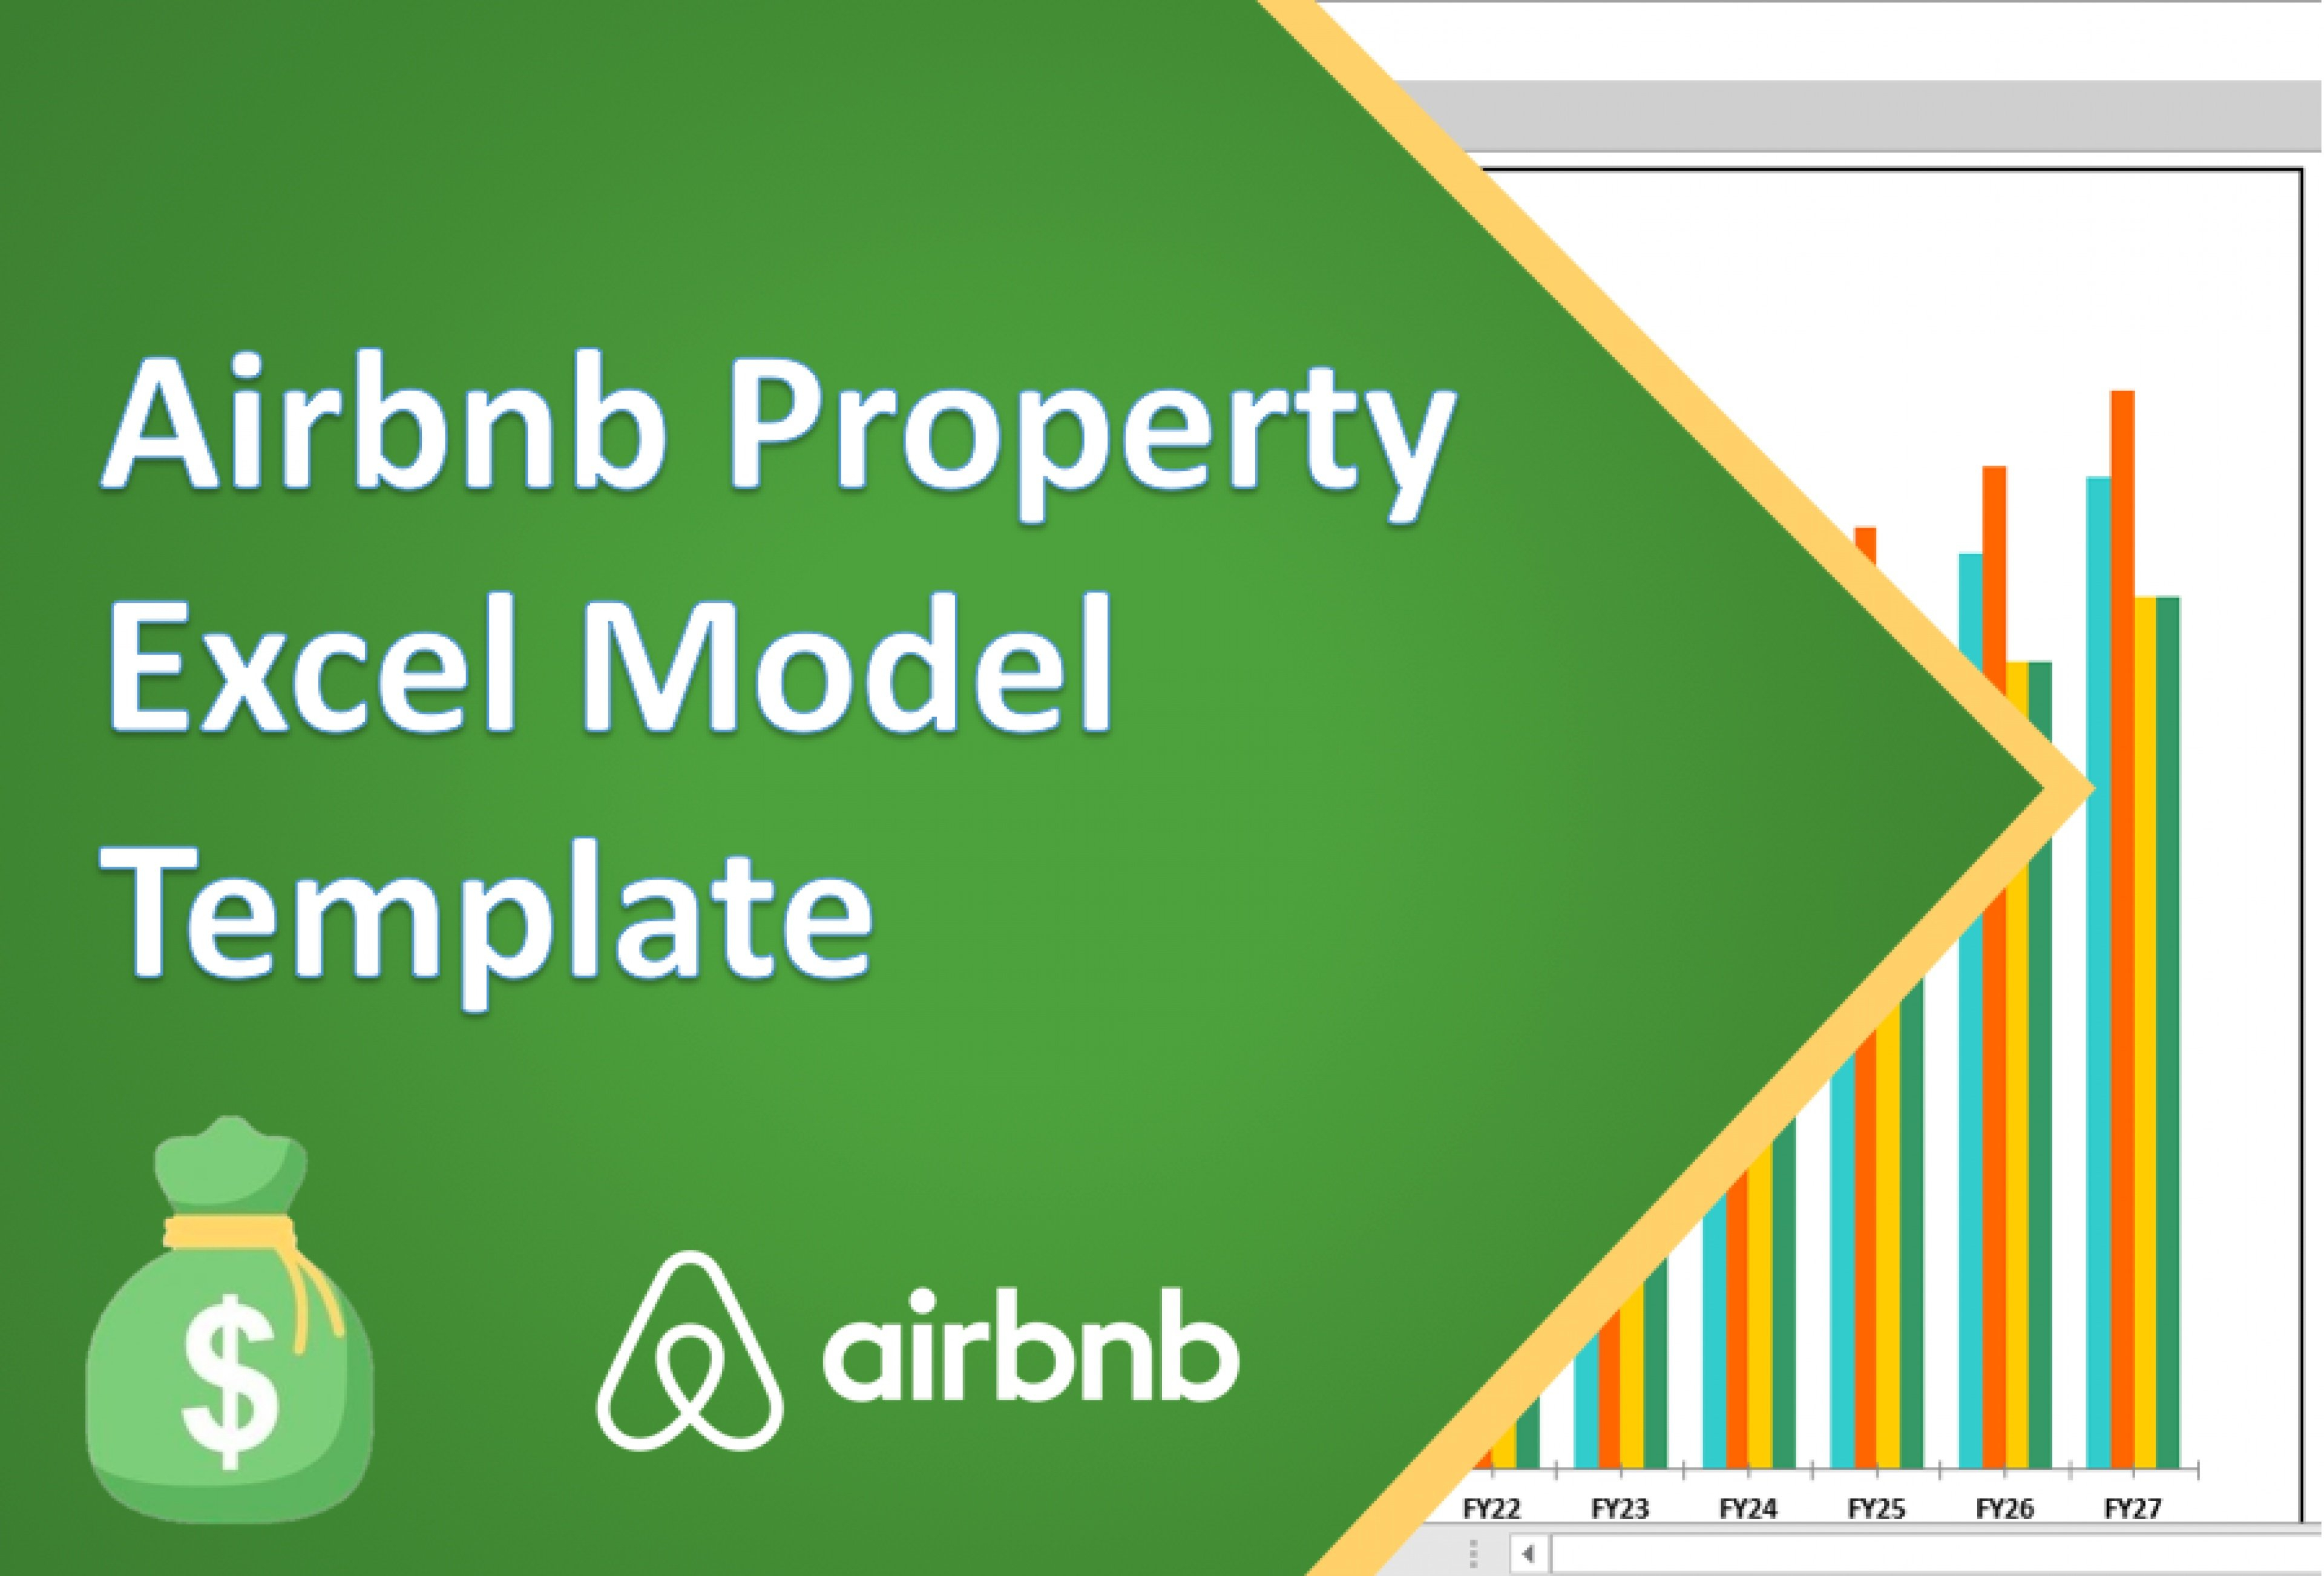 Airbnb Spreadsheet Template Regarding Airbnb Property Excel Model Template  Eloquens Airbnb Spreadsheet Template Printable Spreadsheet  Printable Spreadsheet  airbnb spreadsheet template